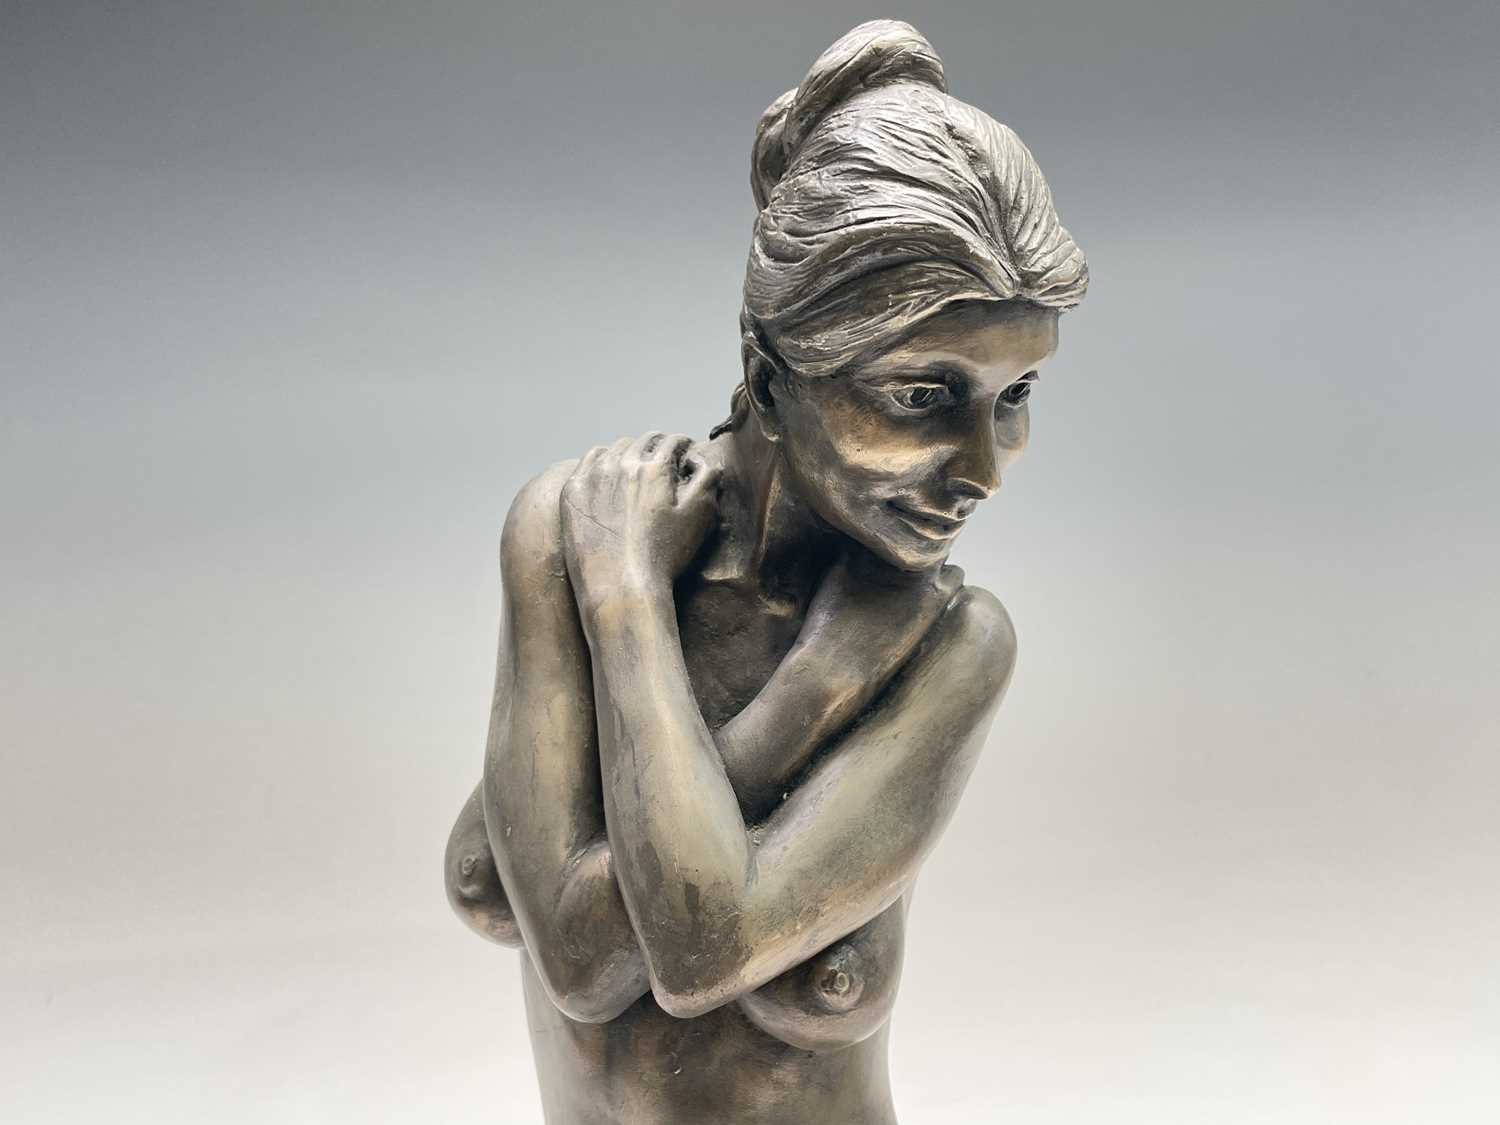 Alec WILES (1924)Female Form Bronzed resin sculpture Signed Height 36.5cm - Image 2 of 11